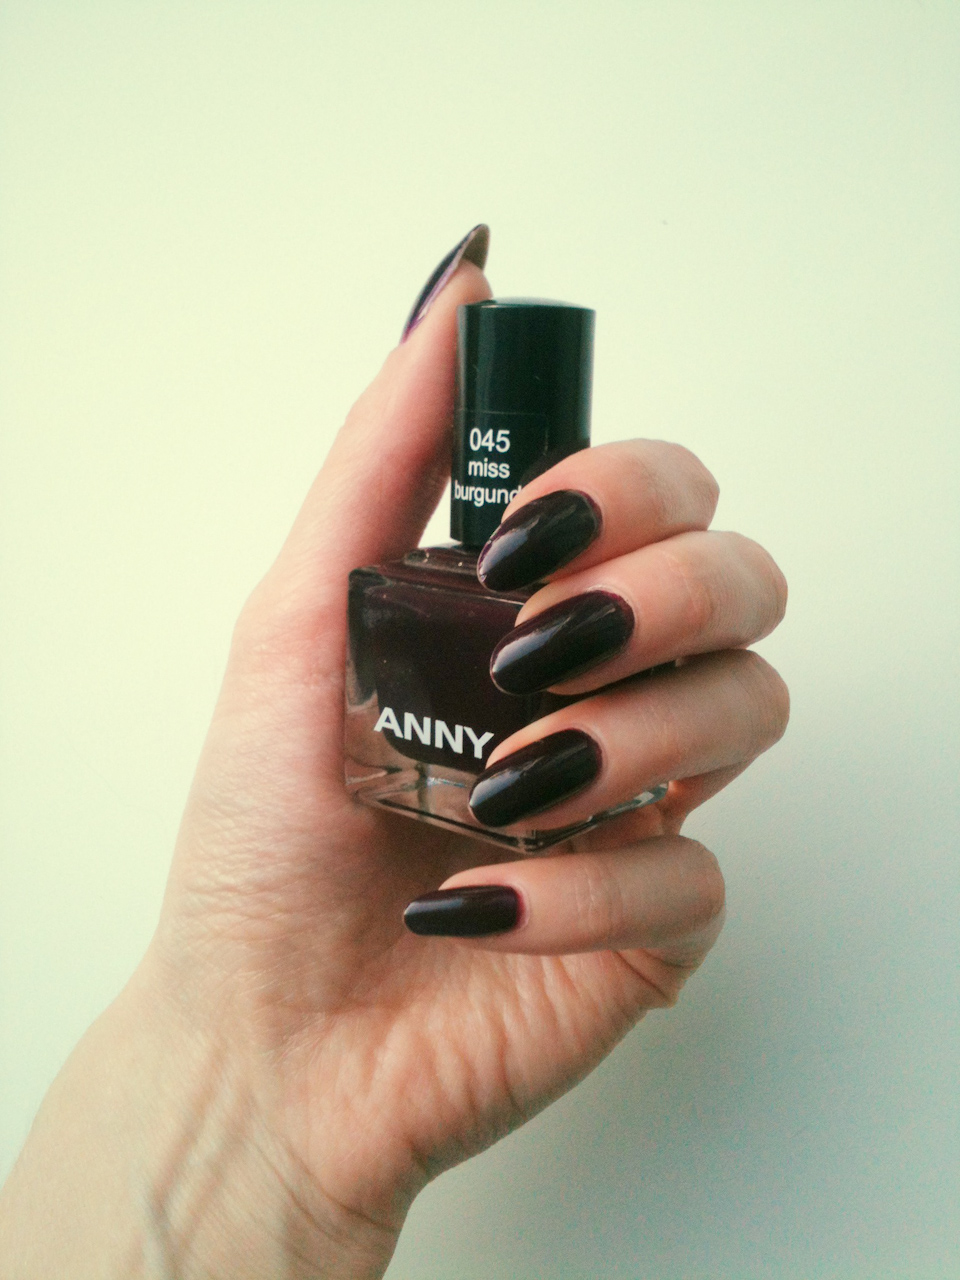 ANNY, ANNY Cosmetics, Nail Polish, Nails, Review